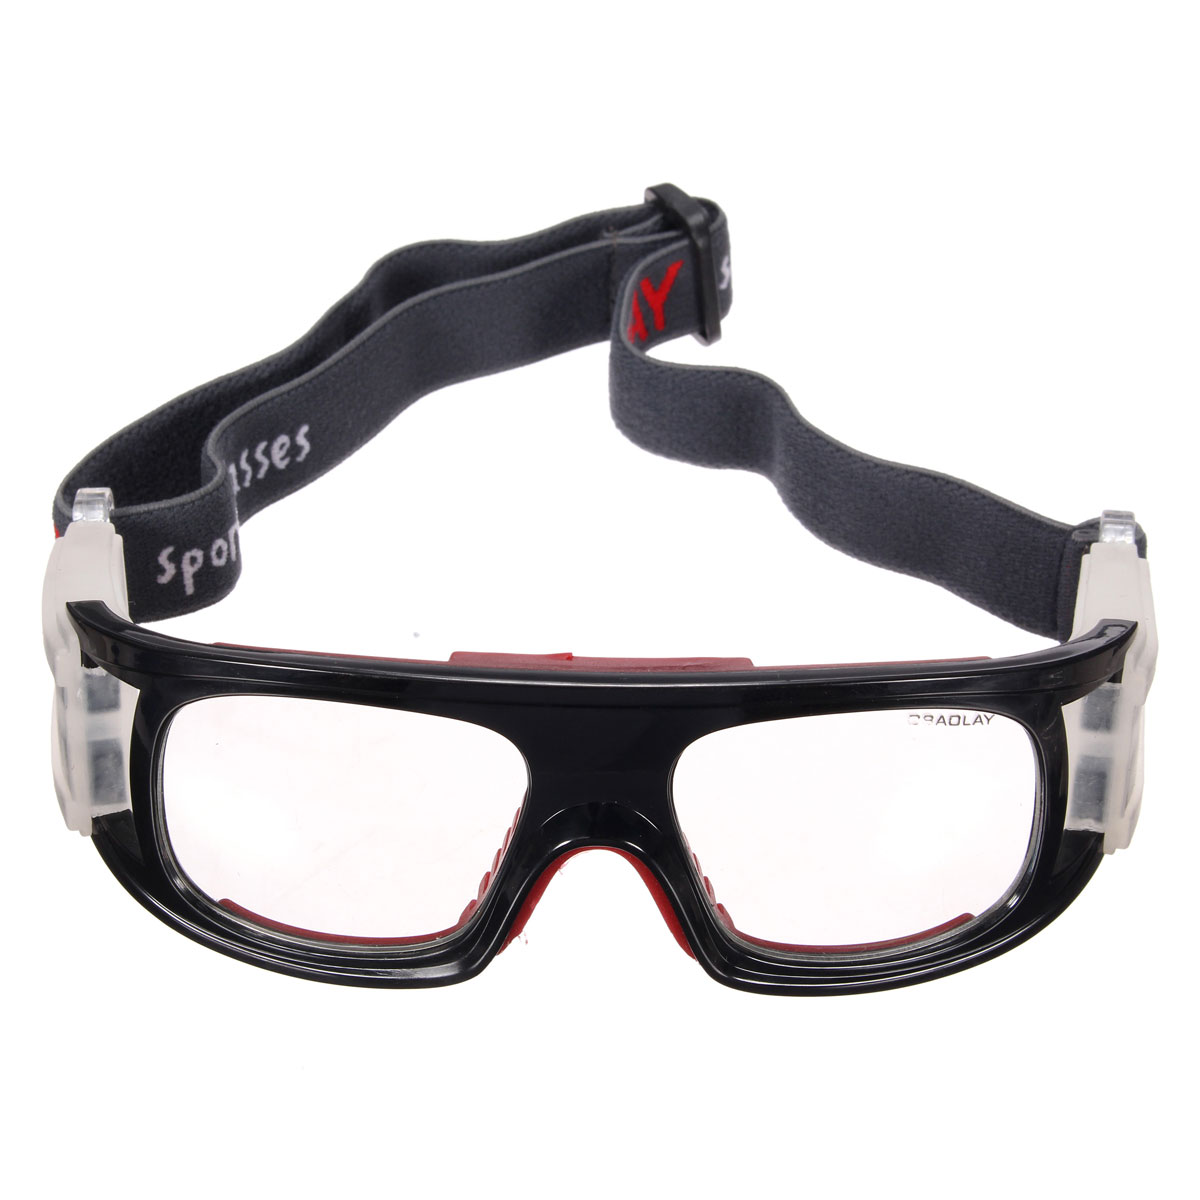 Wilk Outdoor Sport Basket-Ball Football Ski Lunettes de Protection lentille  de myopie ae7327dd1334